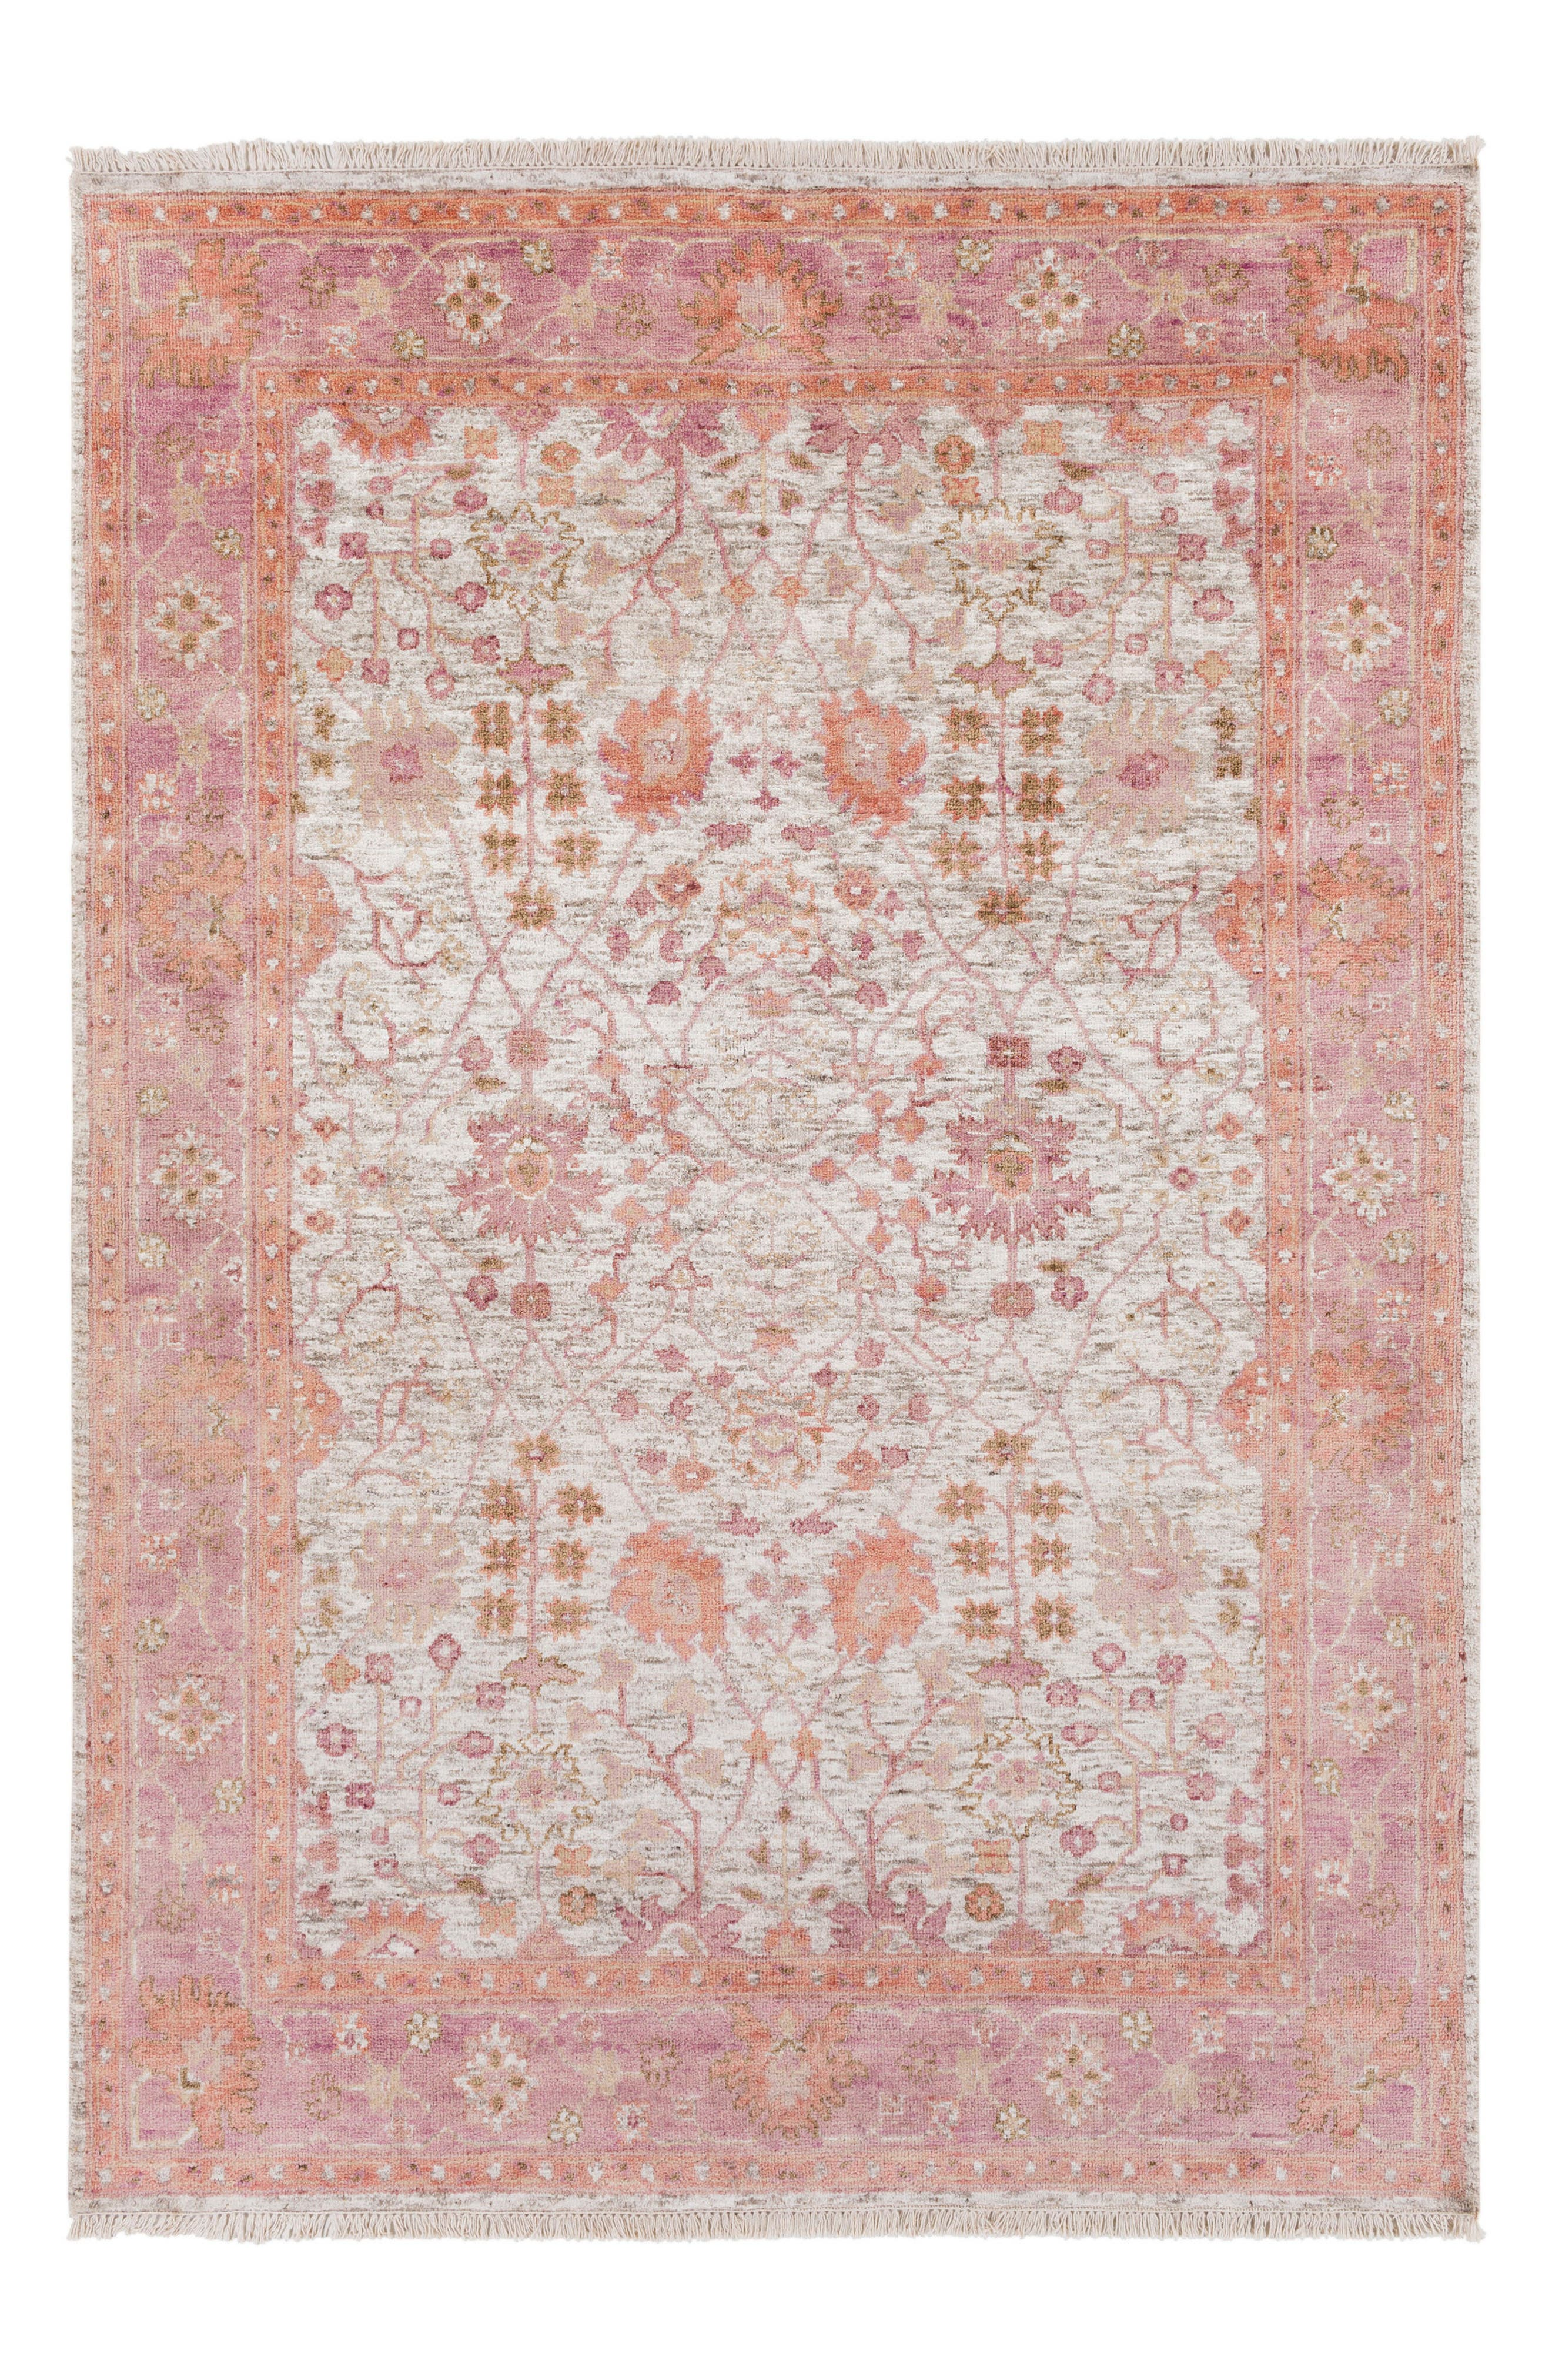 Alternate Image 1 Selected - Surya Home Maeva Classic Hand Knotted Rug